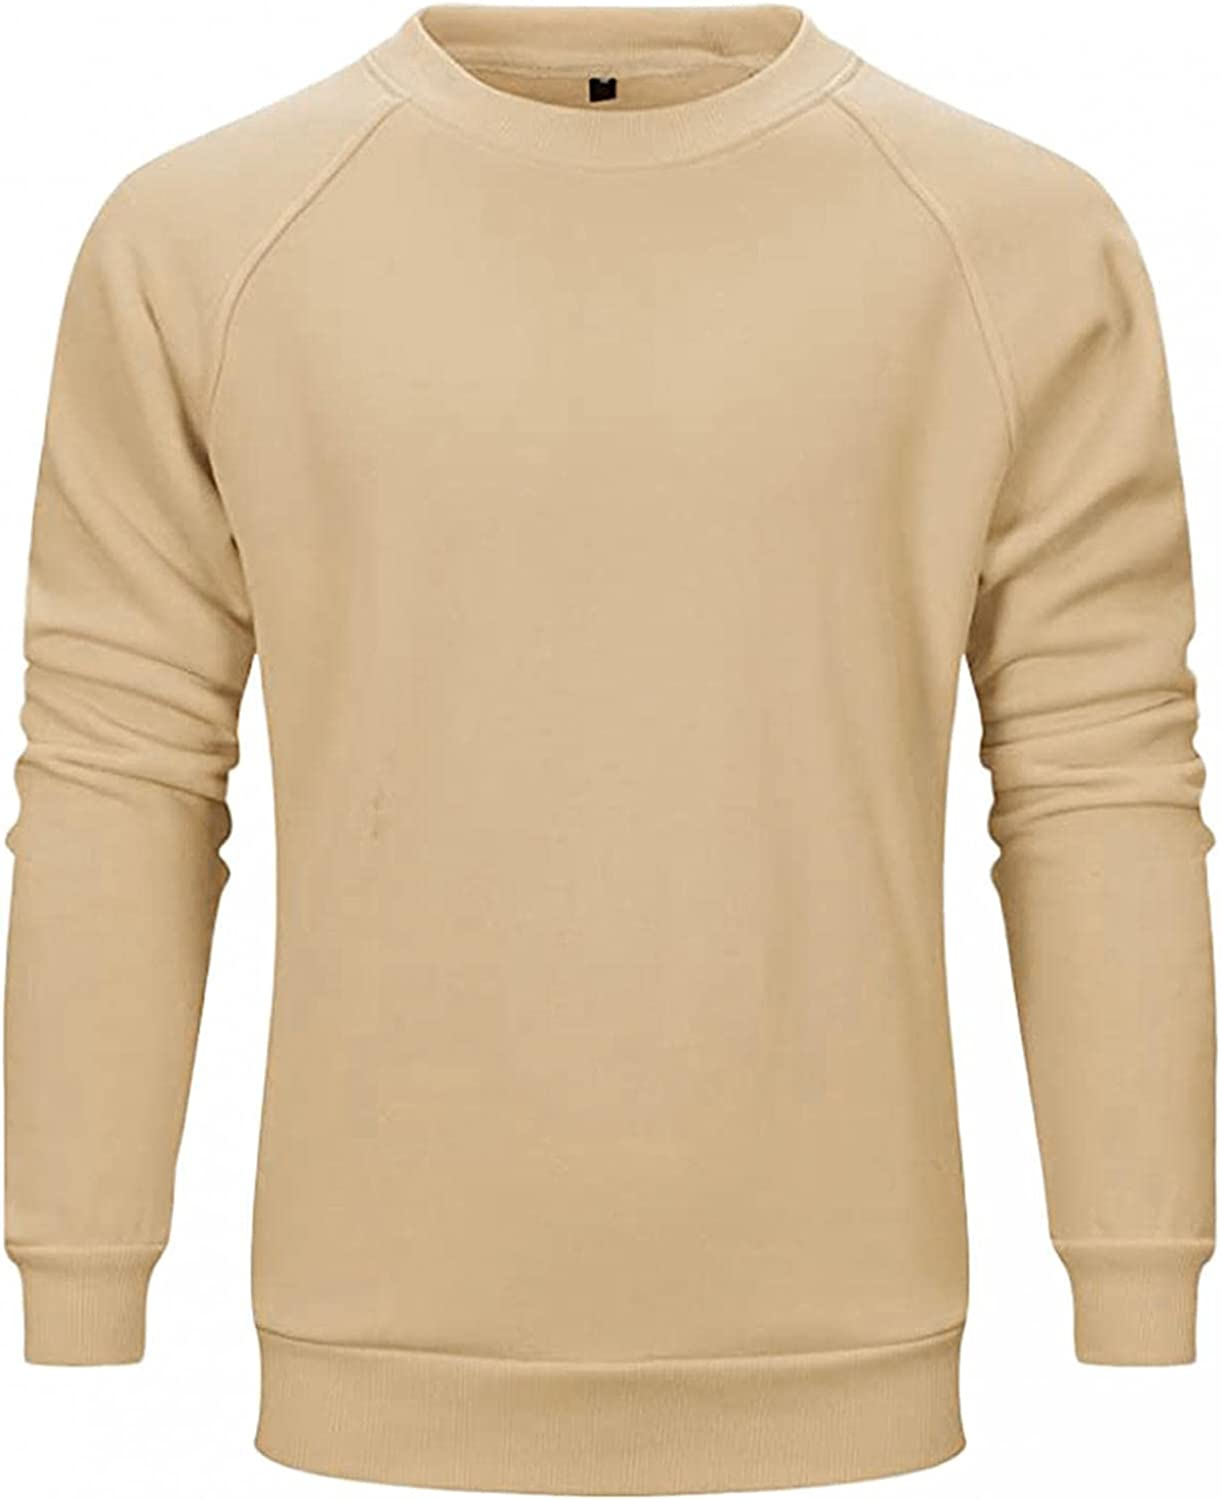 Men's Autumn Slim Casual Crewneck Solid Pullover Long Sleeve Sweatershirts Top Blouse